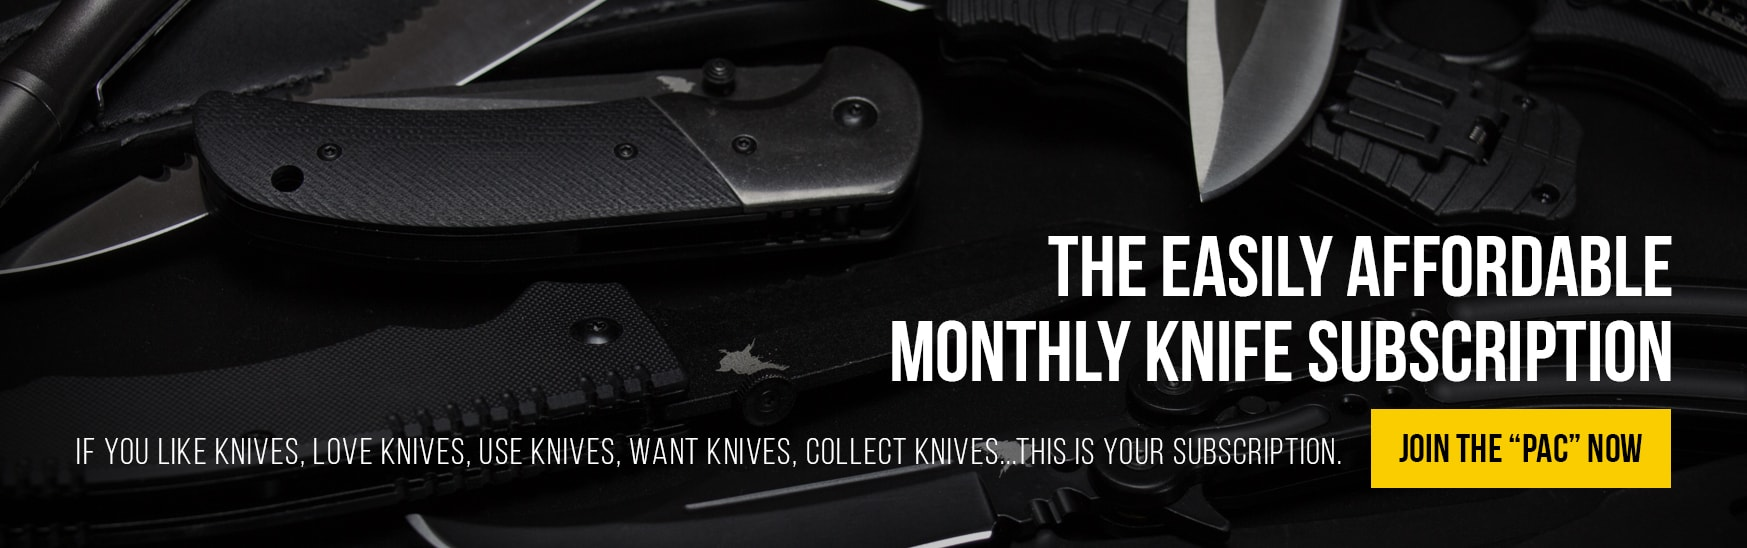 RavenPac Monthly Knife Subscription